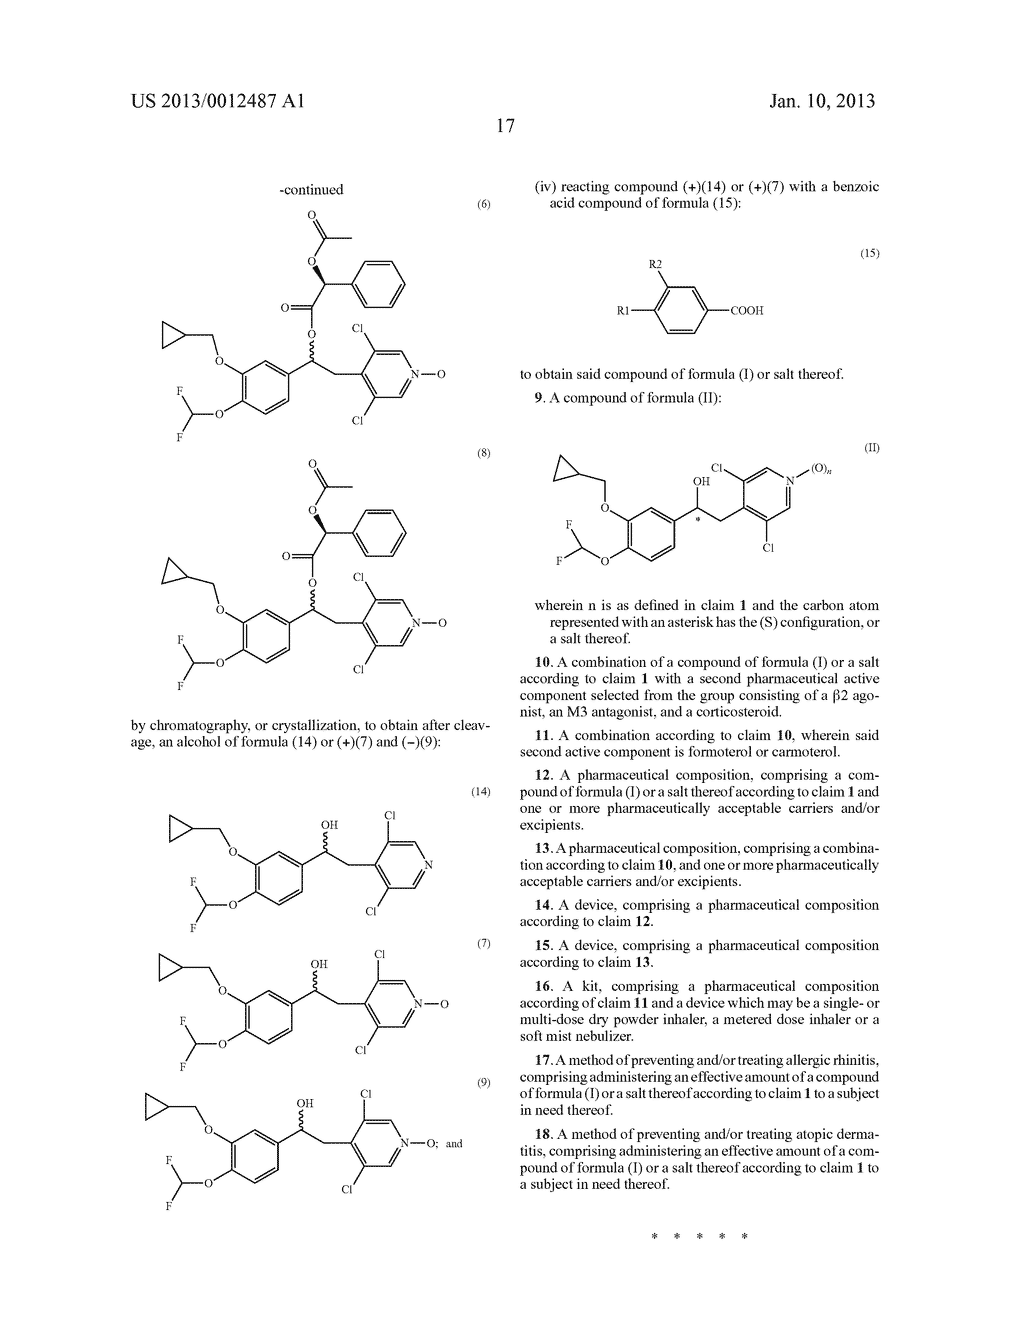 1-PHENYL-2-PYRIDINYL ALKYL ALCOHOL COMPOUNDS AS PHOSPHODIESTERASE     INHIBITORS - diagram, schematic, and image 19